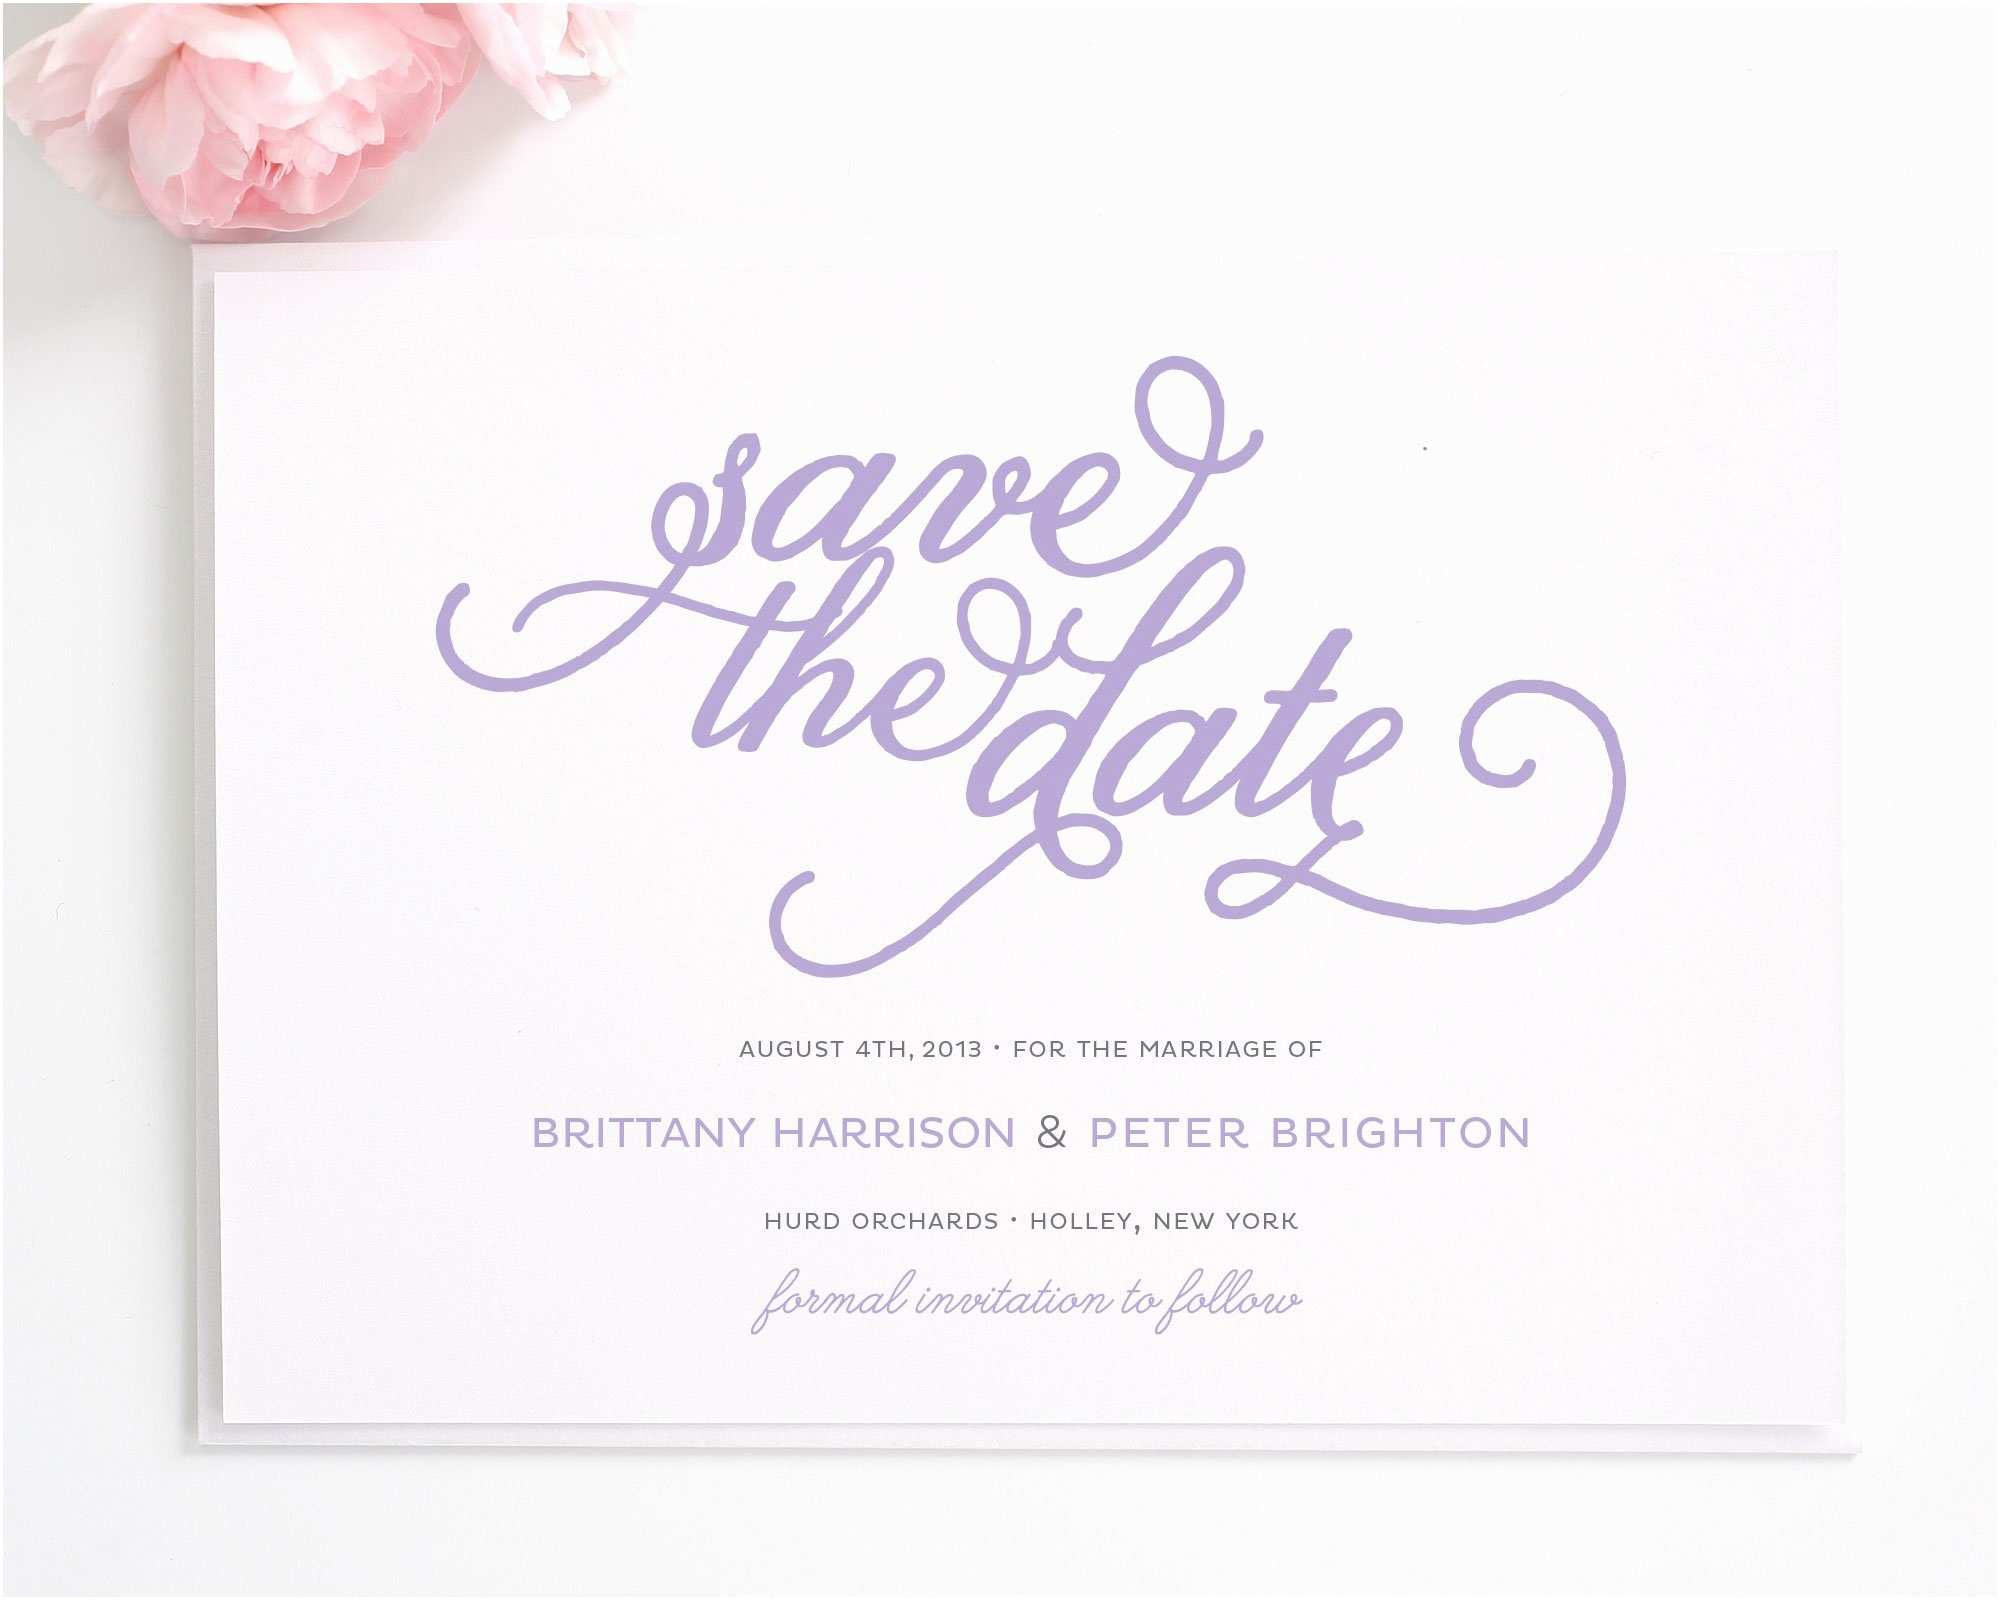 Save the Date Wedding Invitations Classic Whimsy Save the Date Cards Save the Date Cards